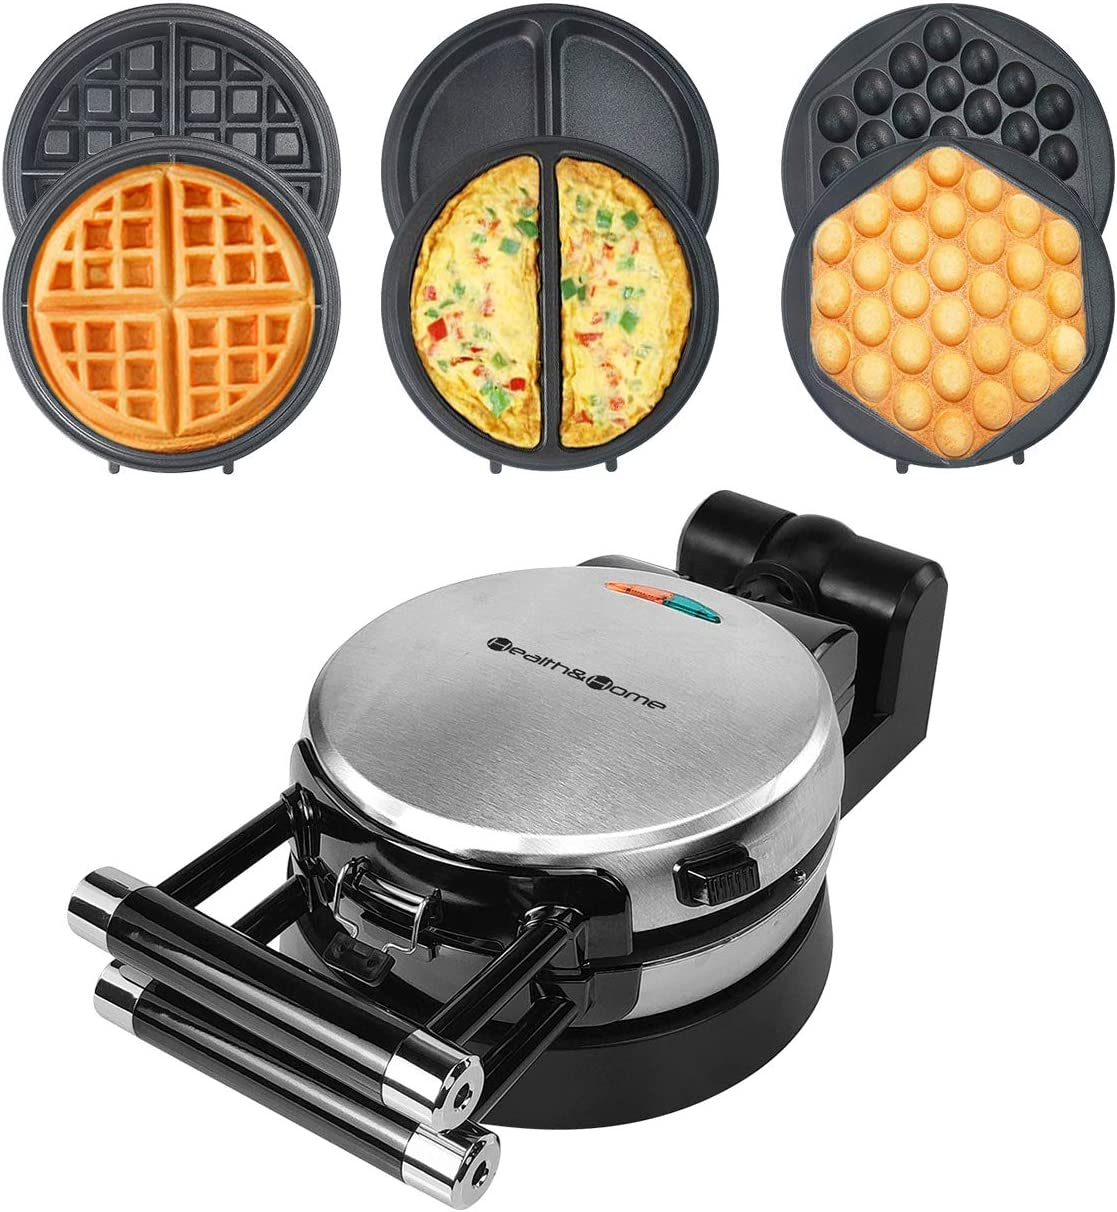 Health and Home 3 Interchangeable Baking Plates for Making waffles, Eggette, Omelet, Upgrade 360 Rotating Belgian Multifunction Nonstick Baking Maker.